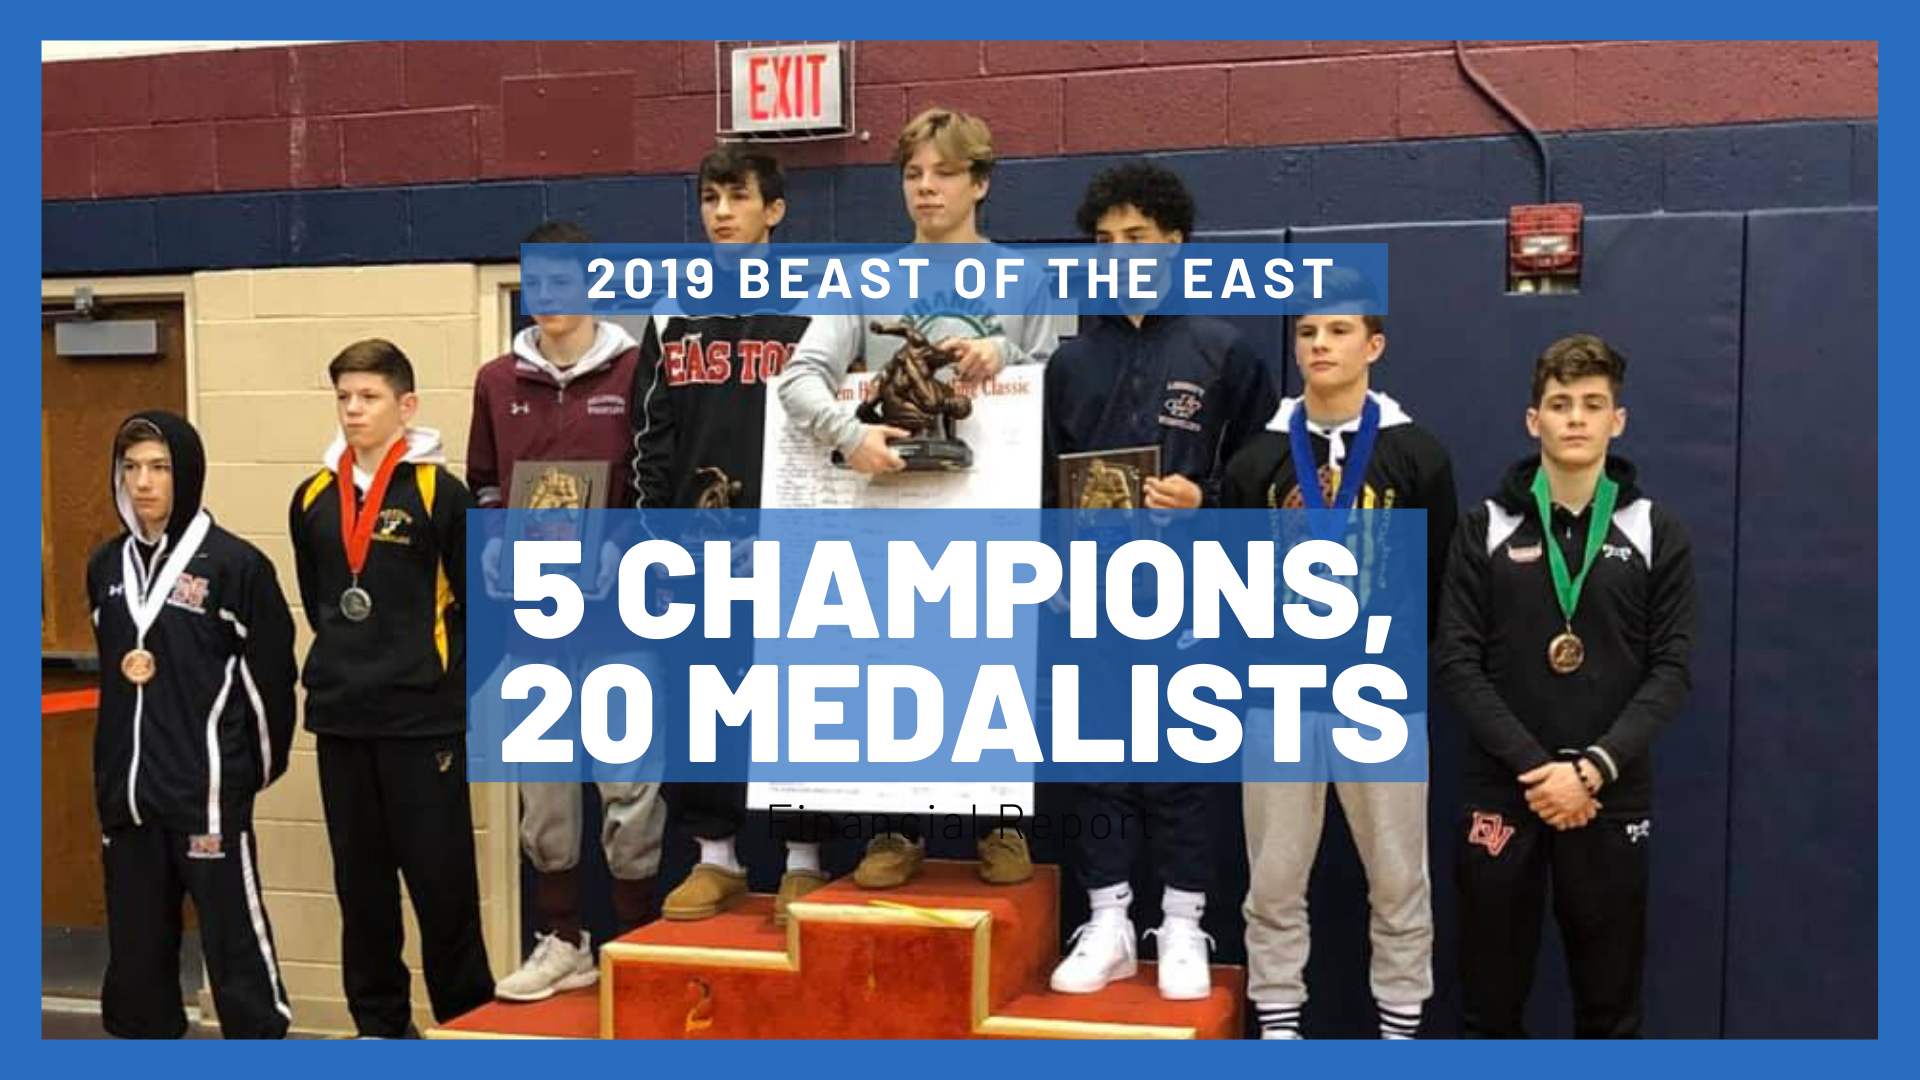 2019 Beast of the East 3